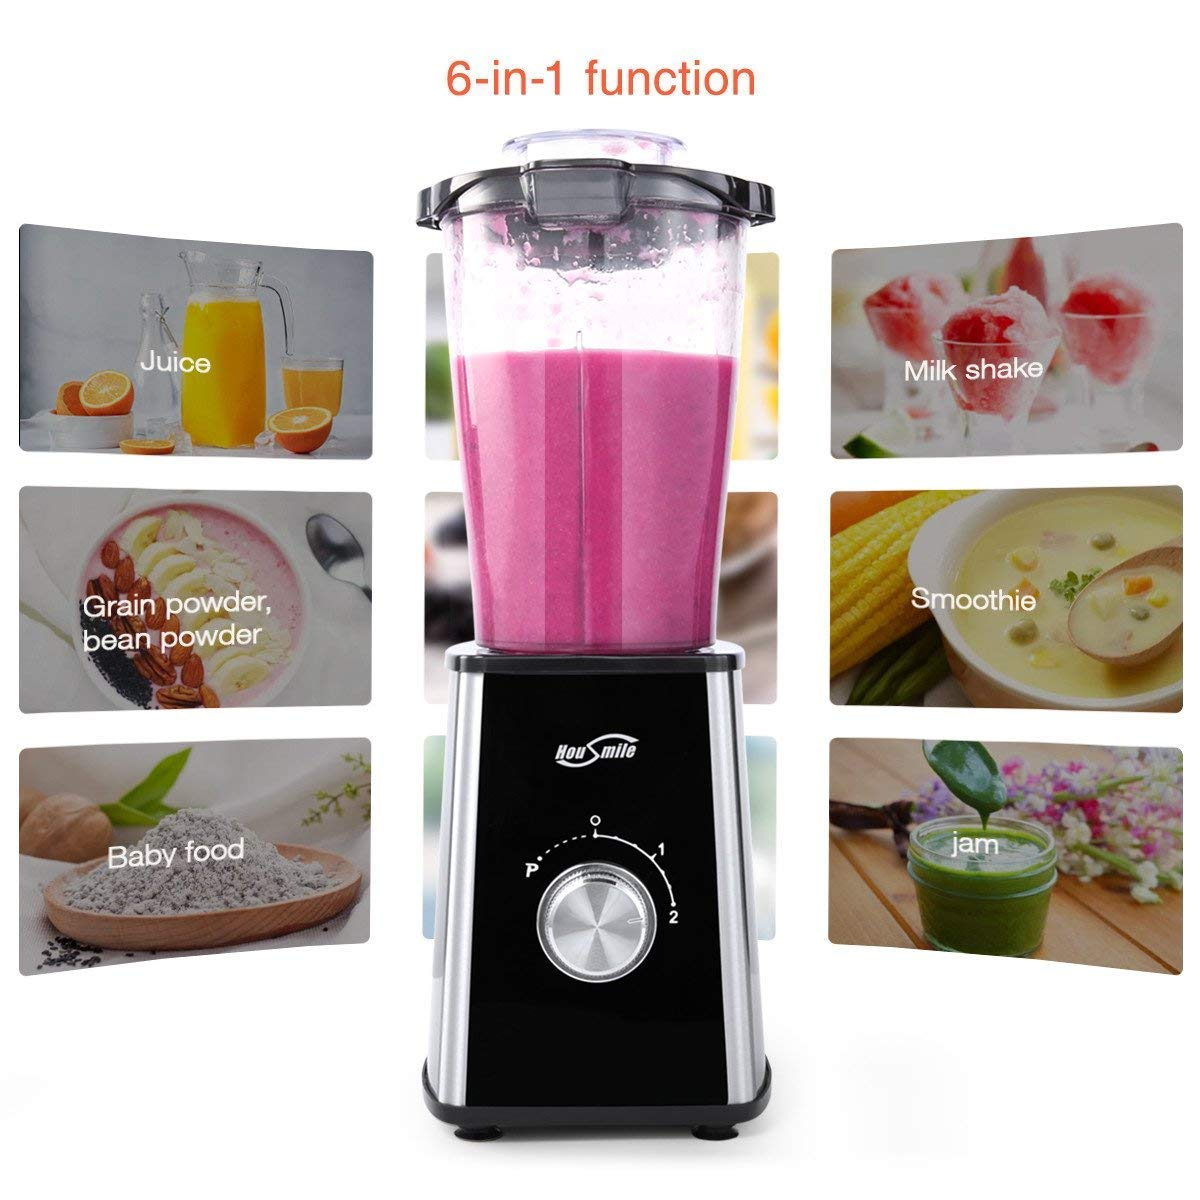 Housmile Smoothie Blender, 7-Piece Countertop with 300 Watt Base, High-Speed for Shakes and Smoothies & Ice, Ice, White by Housmile (Image #4)